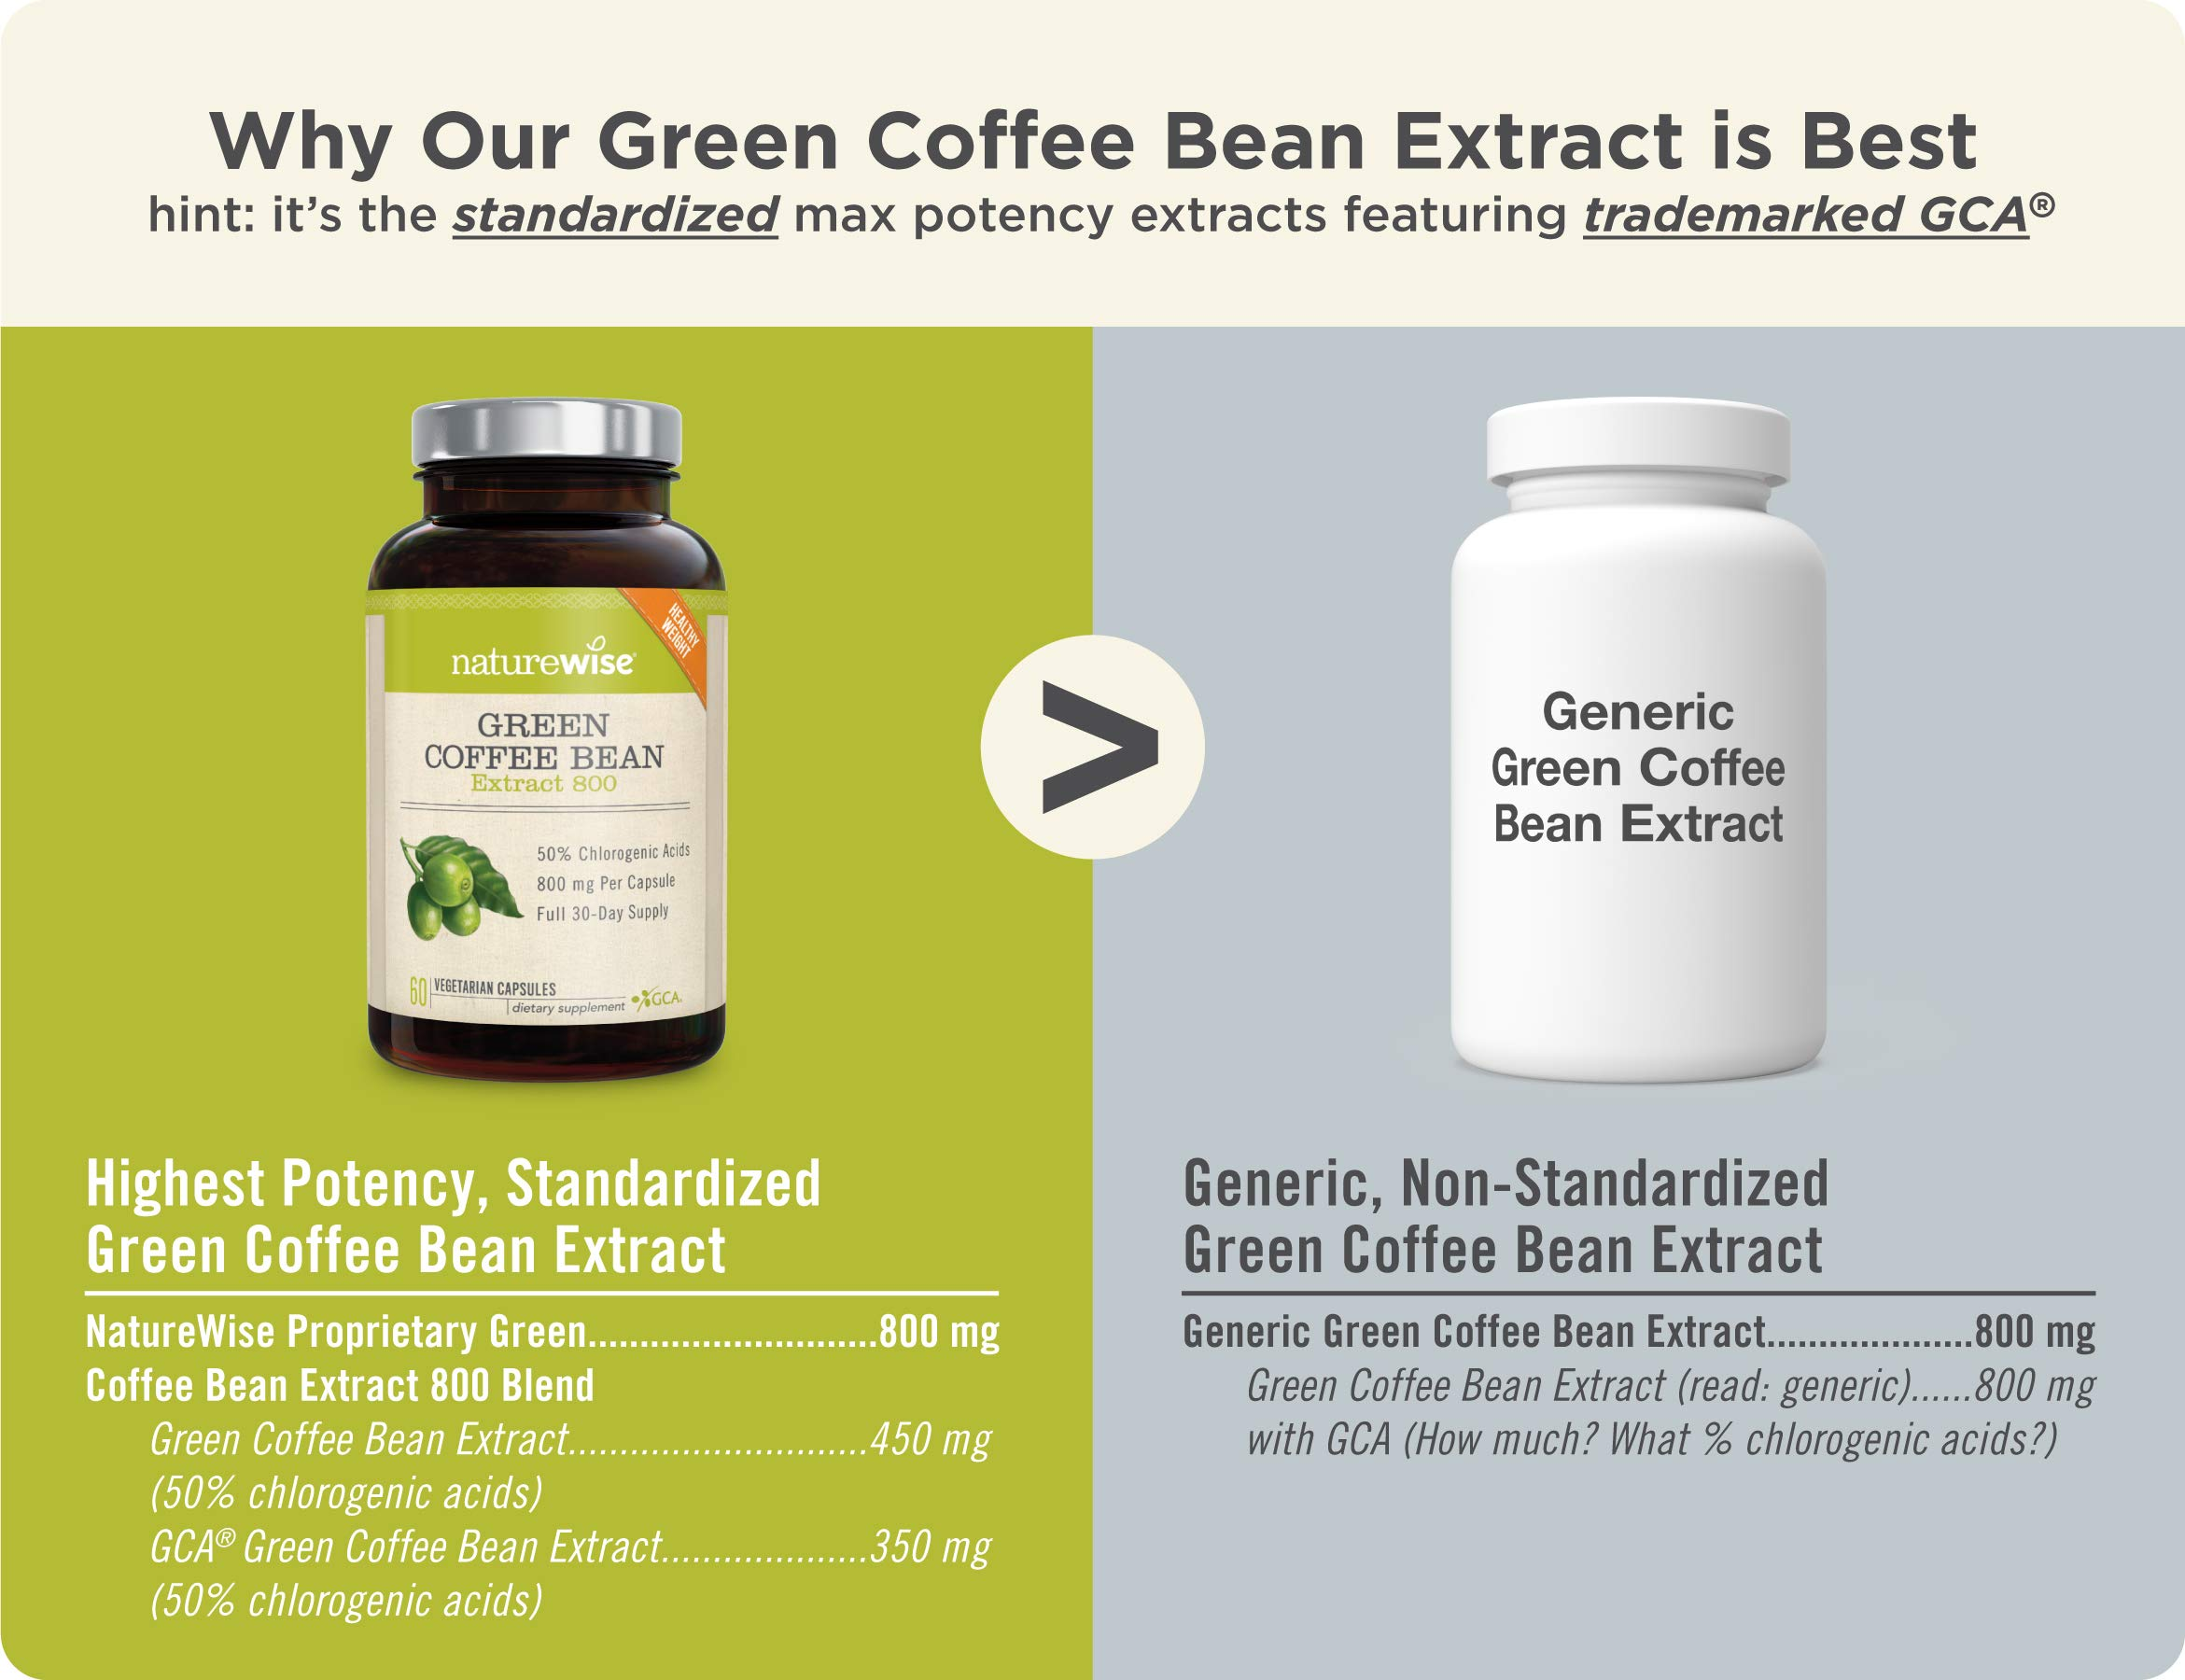 NatureWise Green Coffee Bean 800mg Max Potency Extract 50% Chlorogenic Acids | Raw Green Coffee Antioxidant Supplement & Metabolism Booster for Weight Loss | Non-GMO, Vegan, Gluten-Free [2 Month] by NatureWise (Image #2)